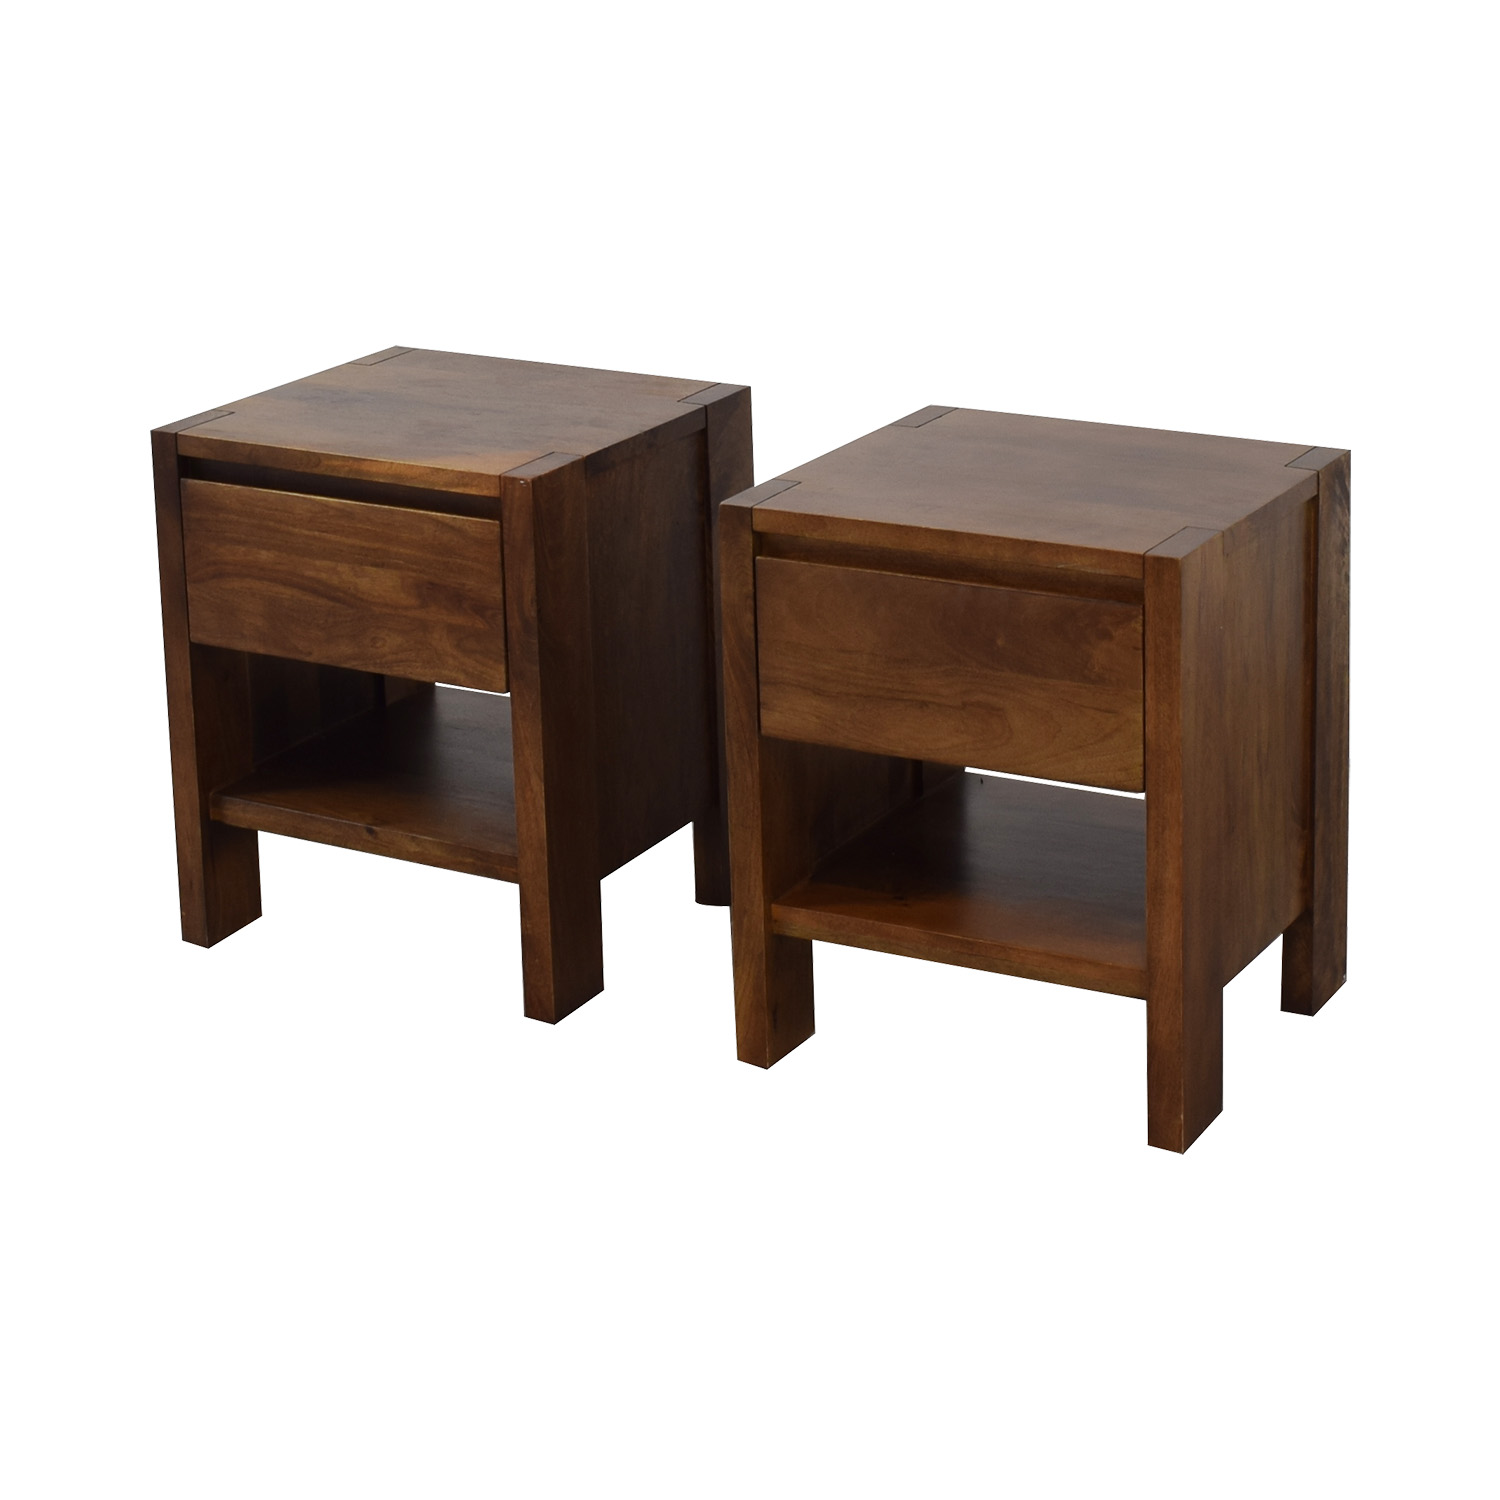 Crate & Barrel Crate & Barrel Nightstands second hand